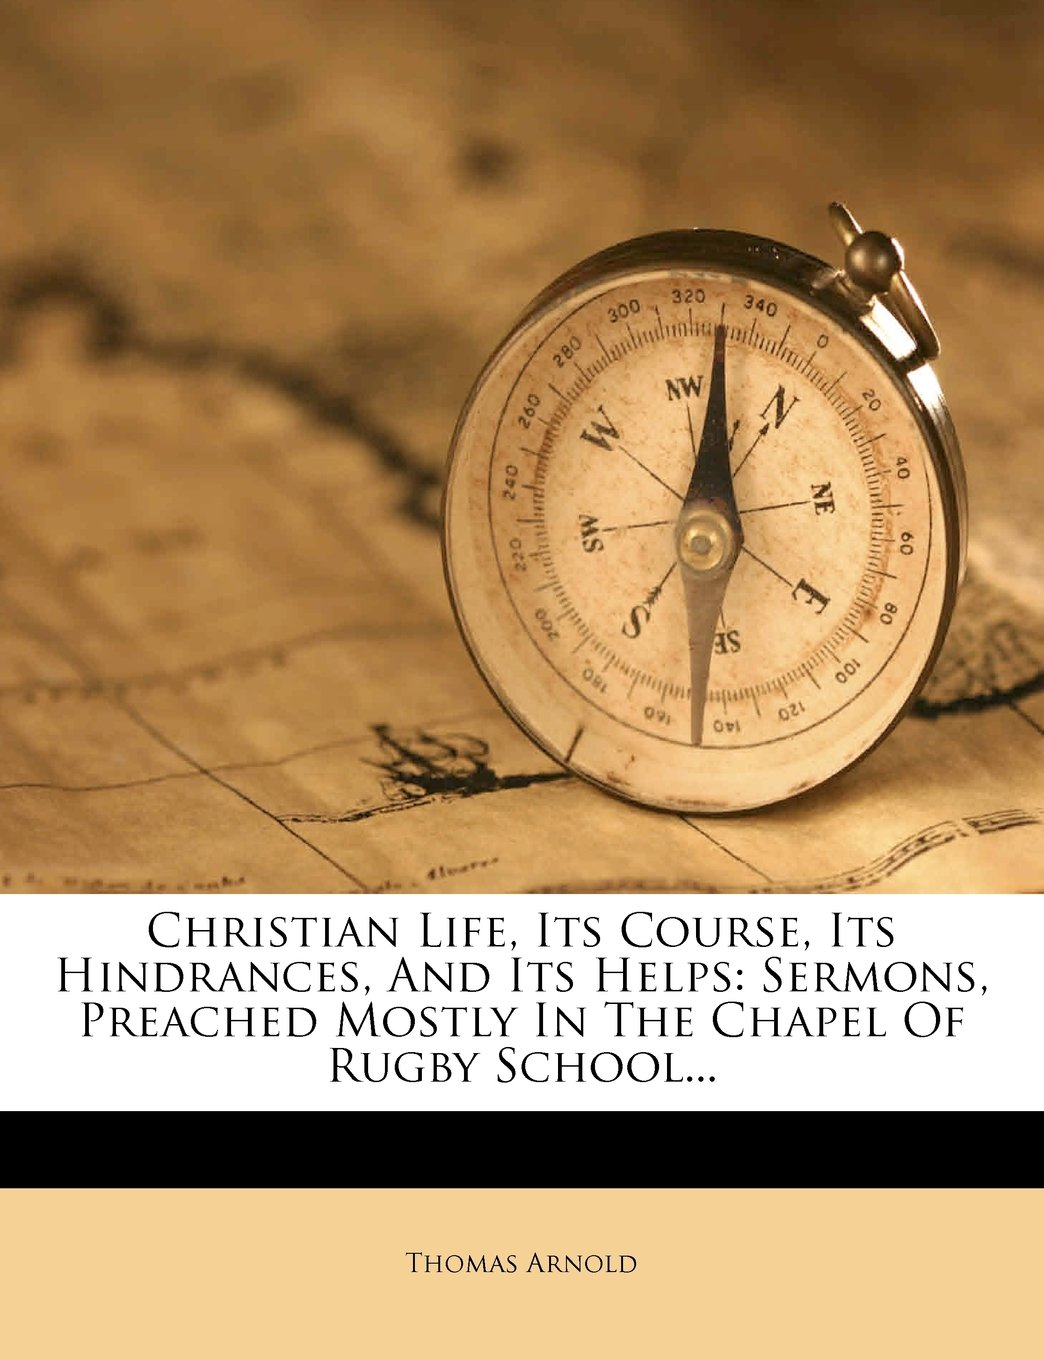 Christian Life, Its Course, Its Hindrances, And Its Helps: Sermons, Preached Mostly In The Chapel Of Rugby School... PDF